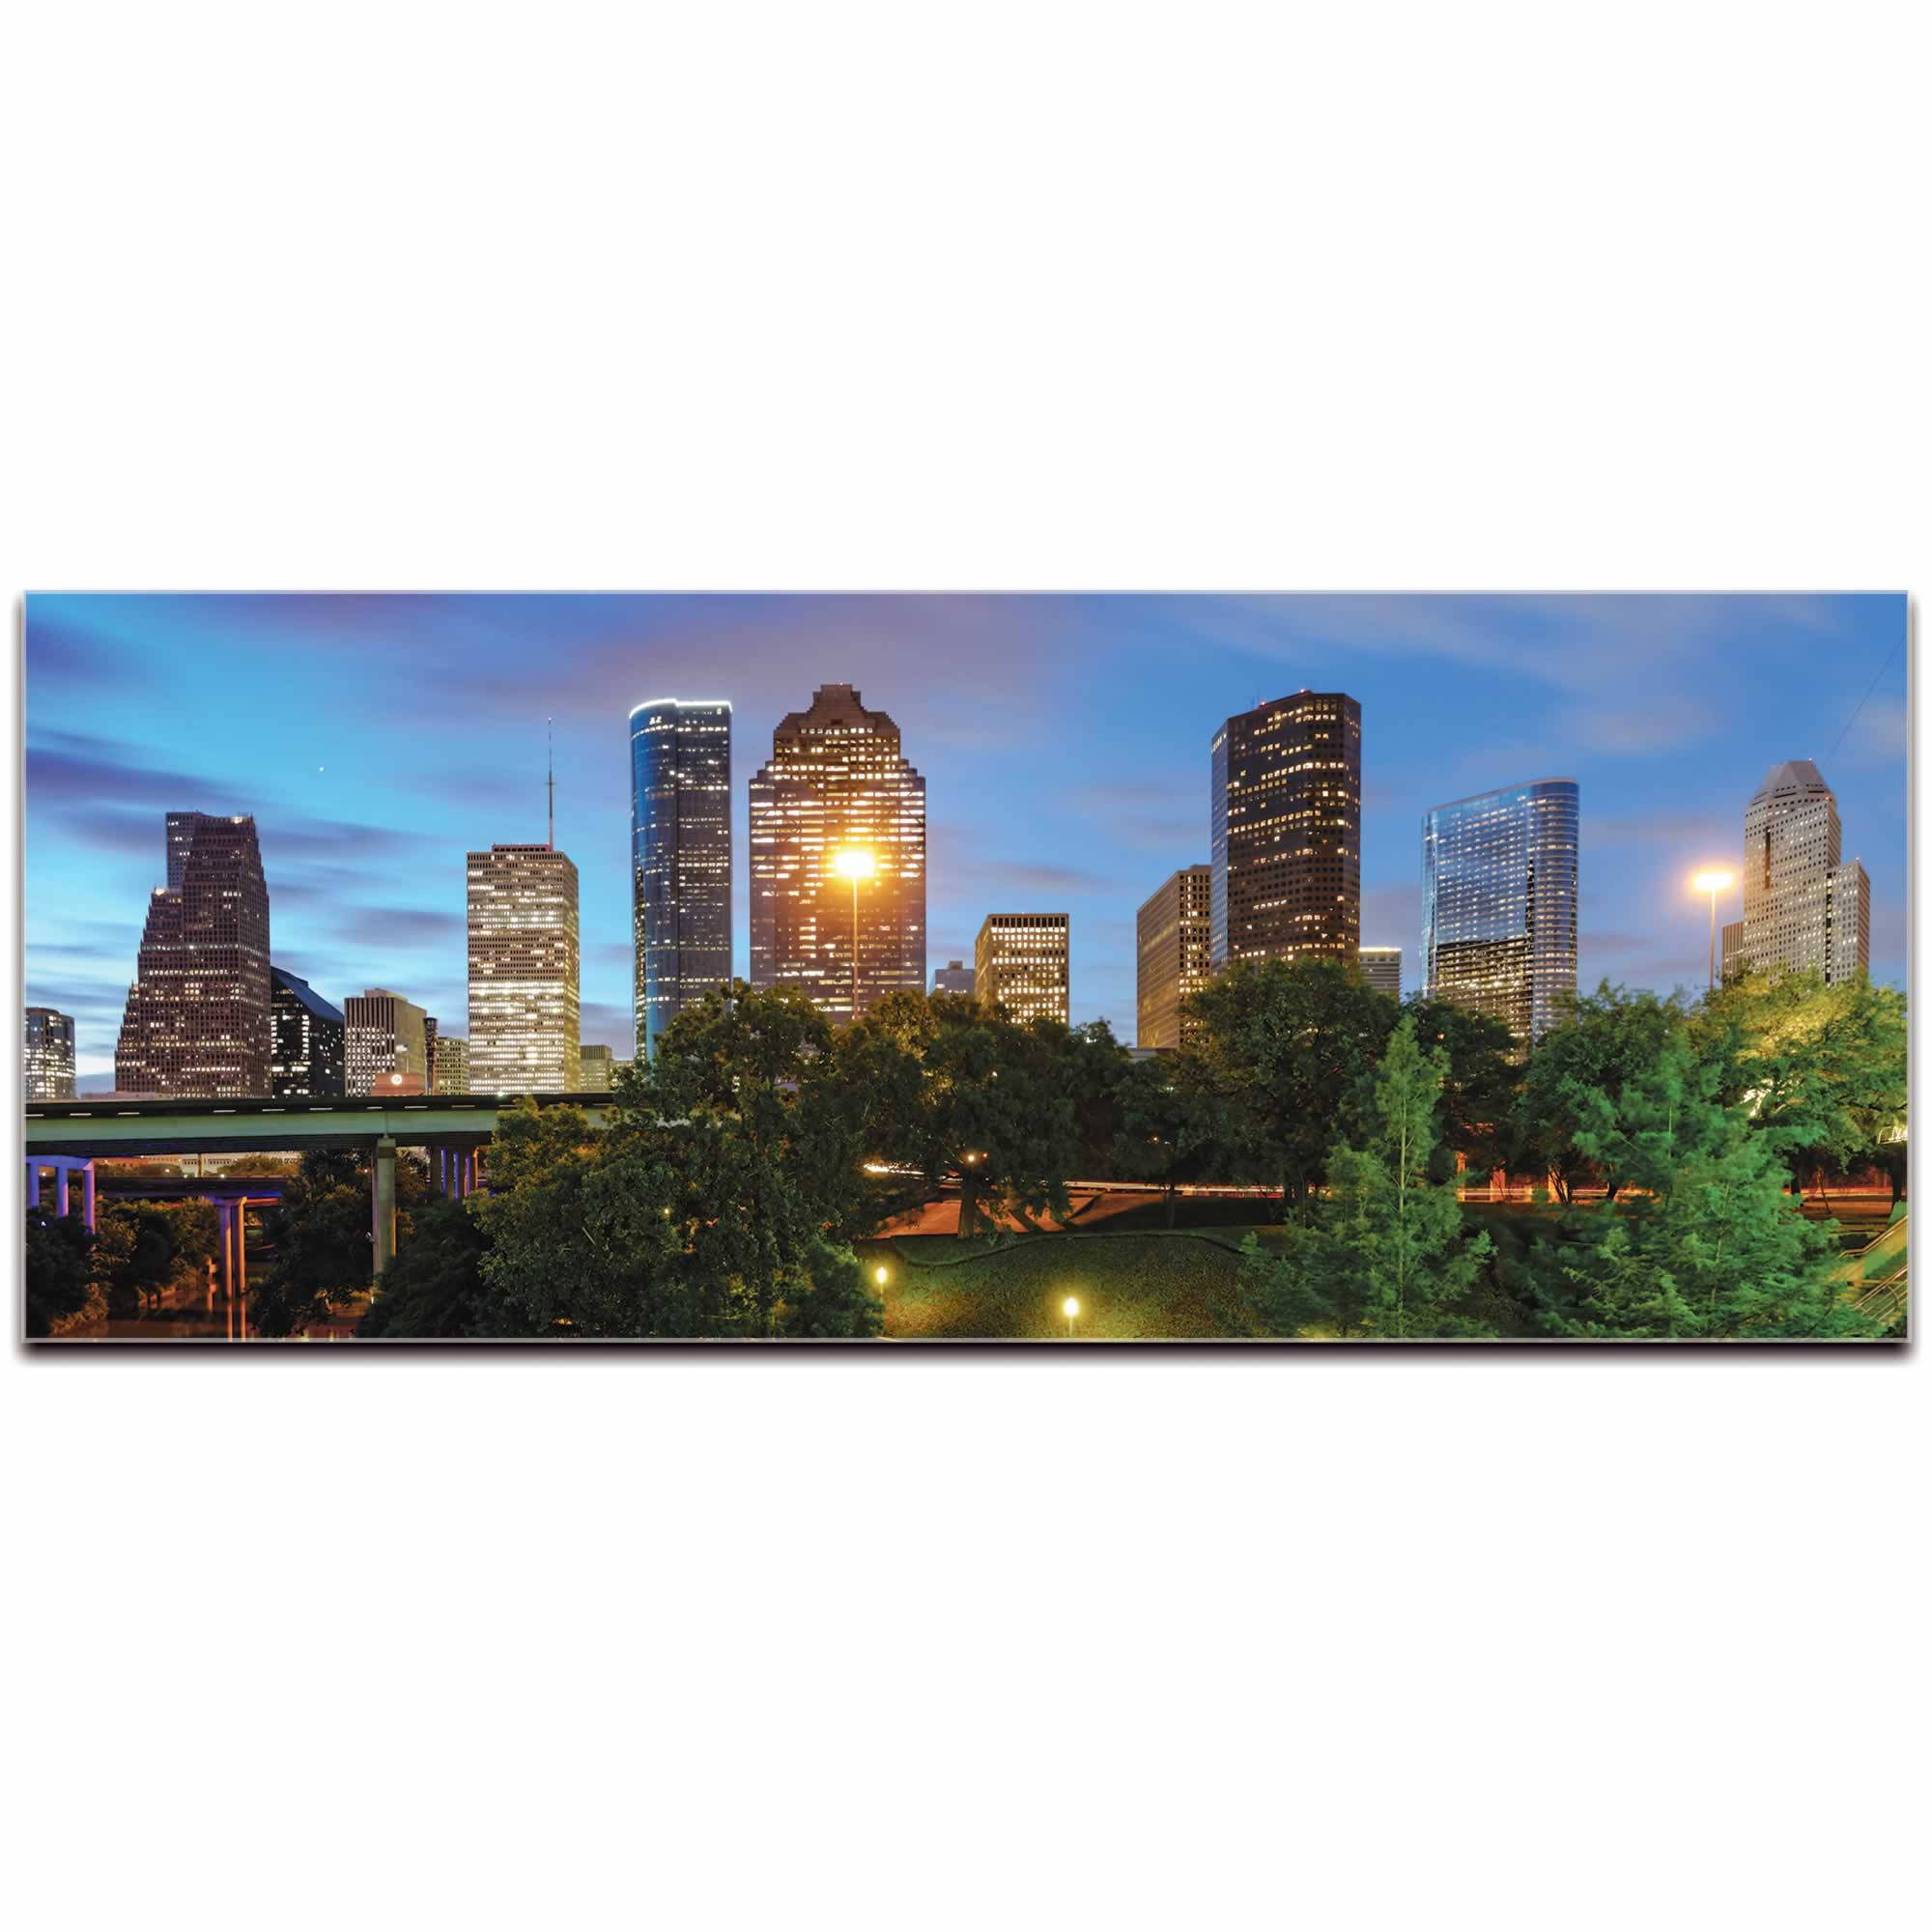 Houston City Skyline - Urban Modern Art Designer Home Decor Cityscape Wall Artwork  sc 1 st  Modern Crowd Inc : city skyline wall art - www.pureclipart.com